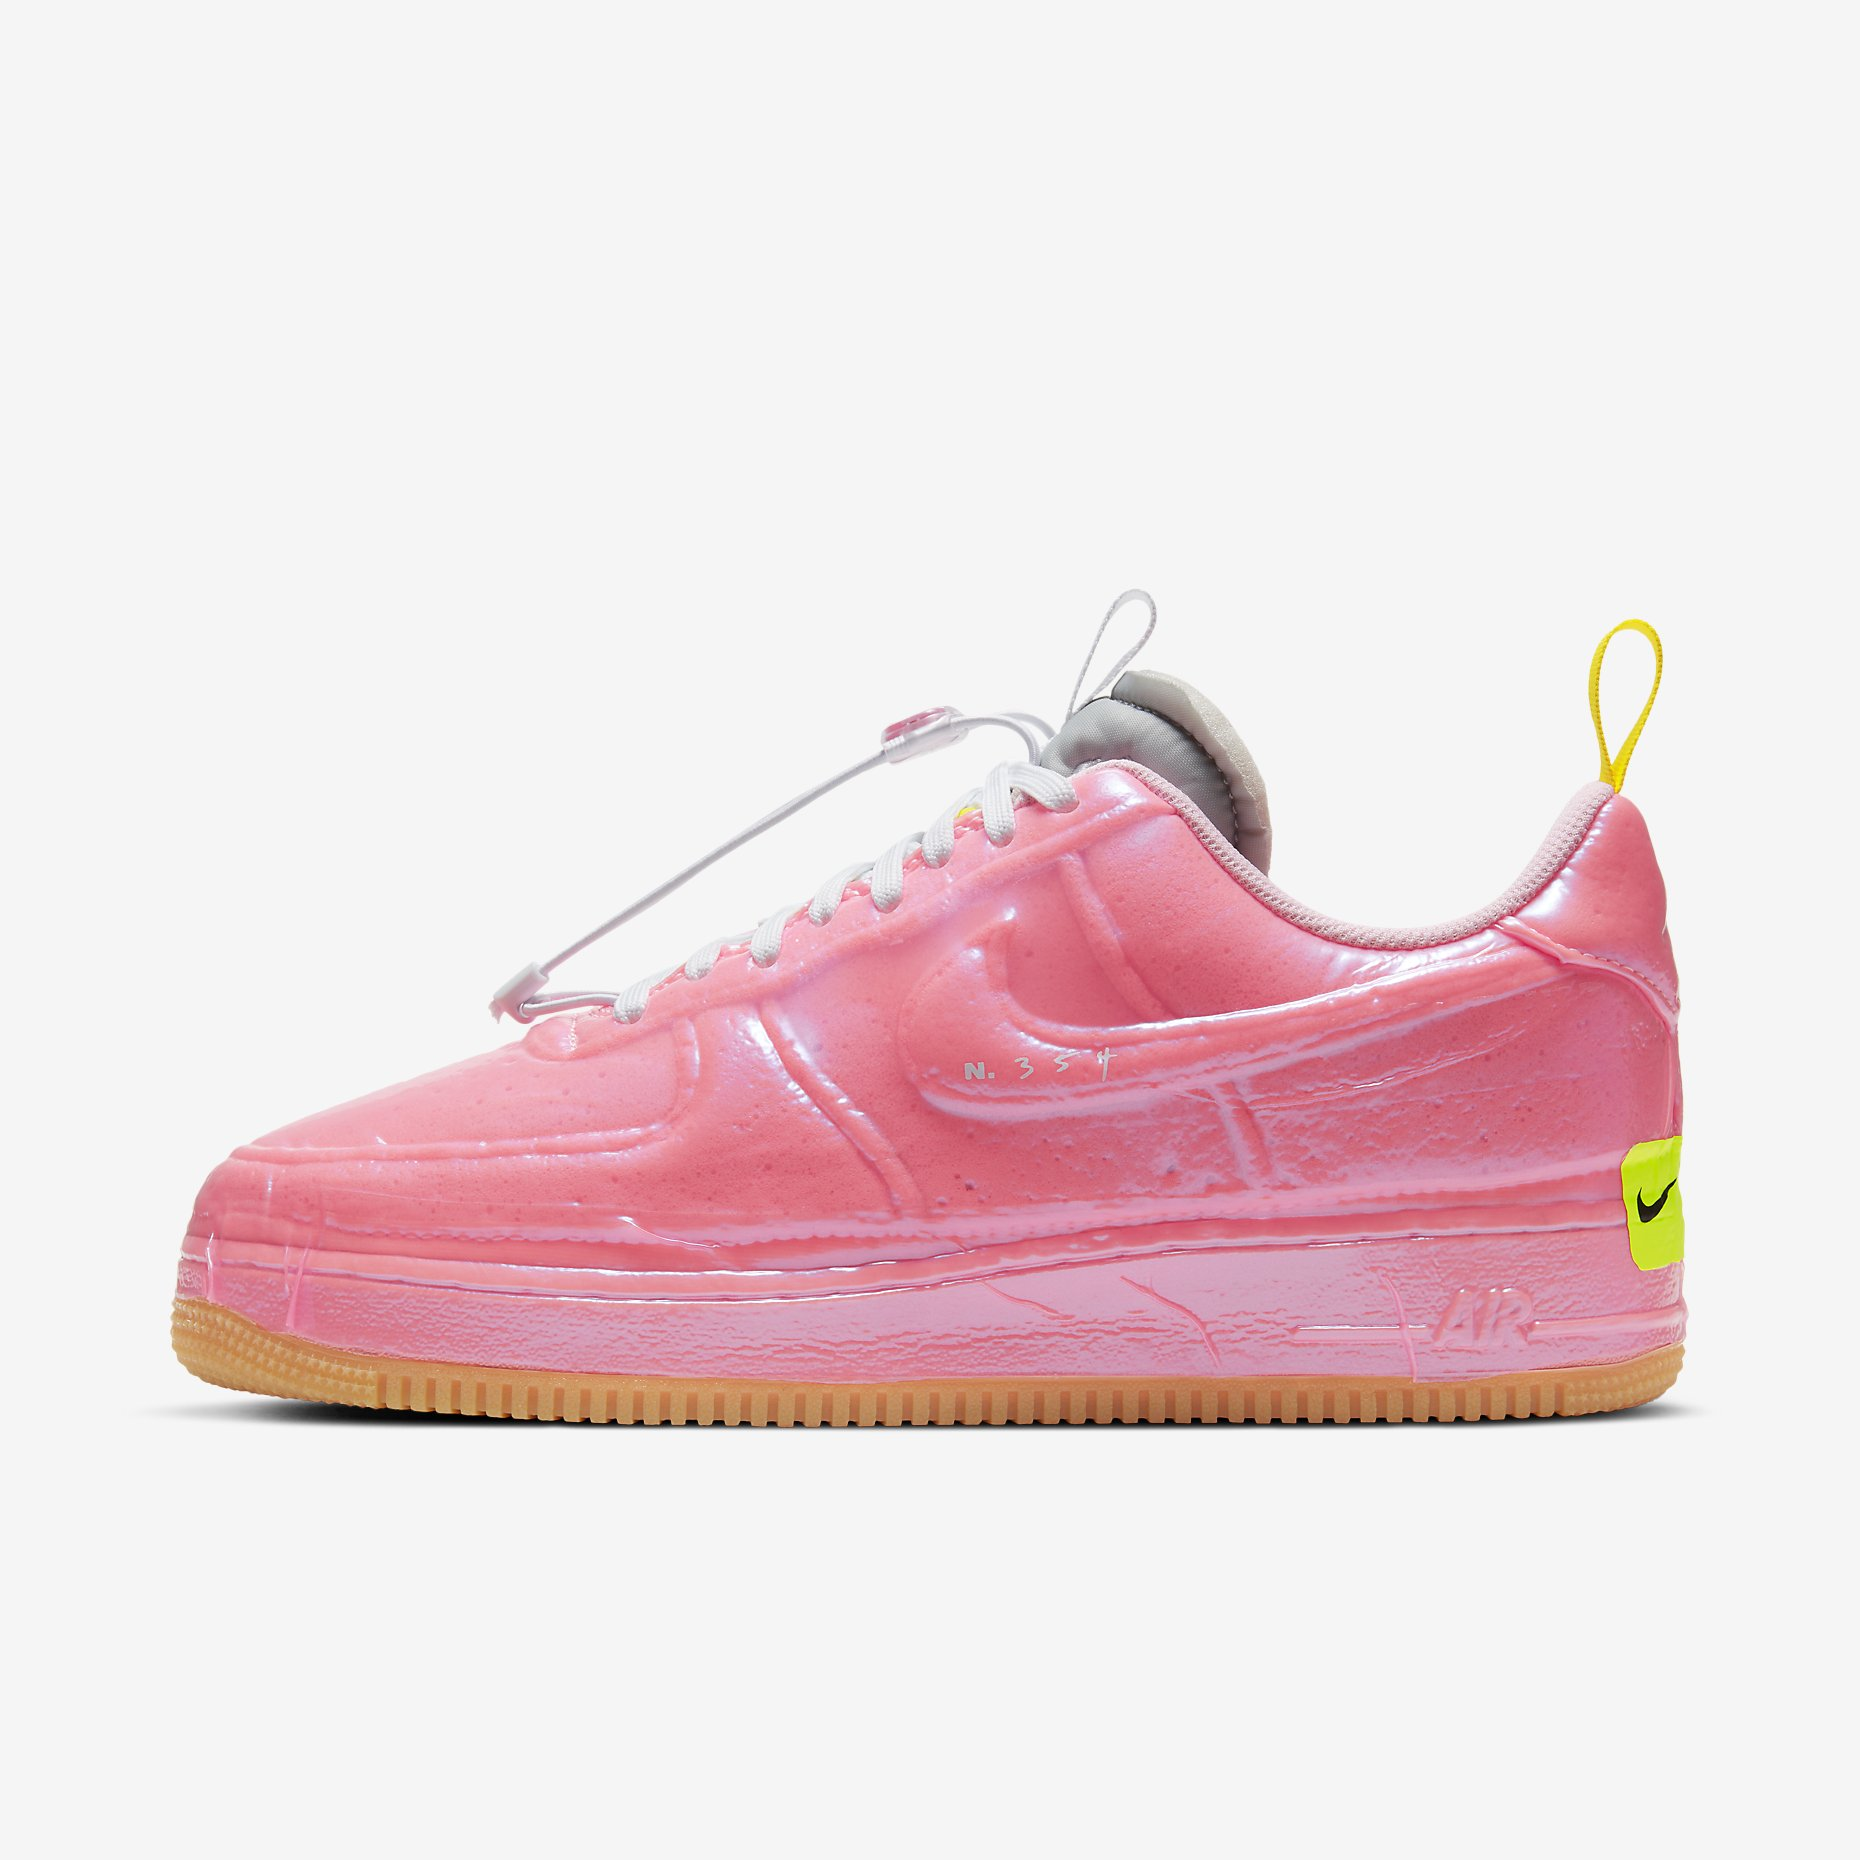 Nike Air Force 1 Experimental 'Racer Pink'}